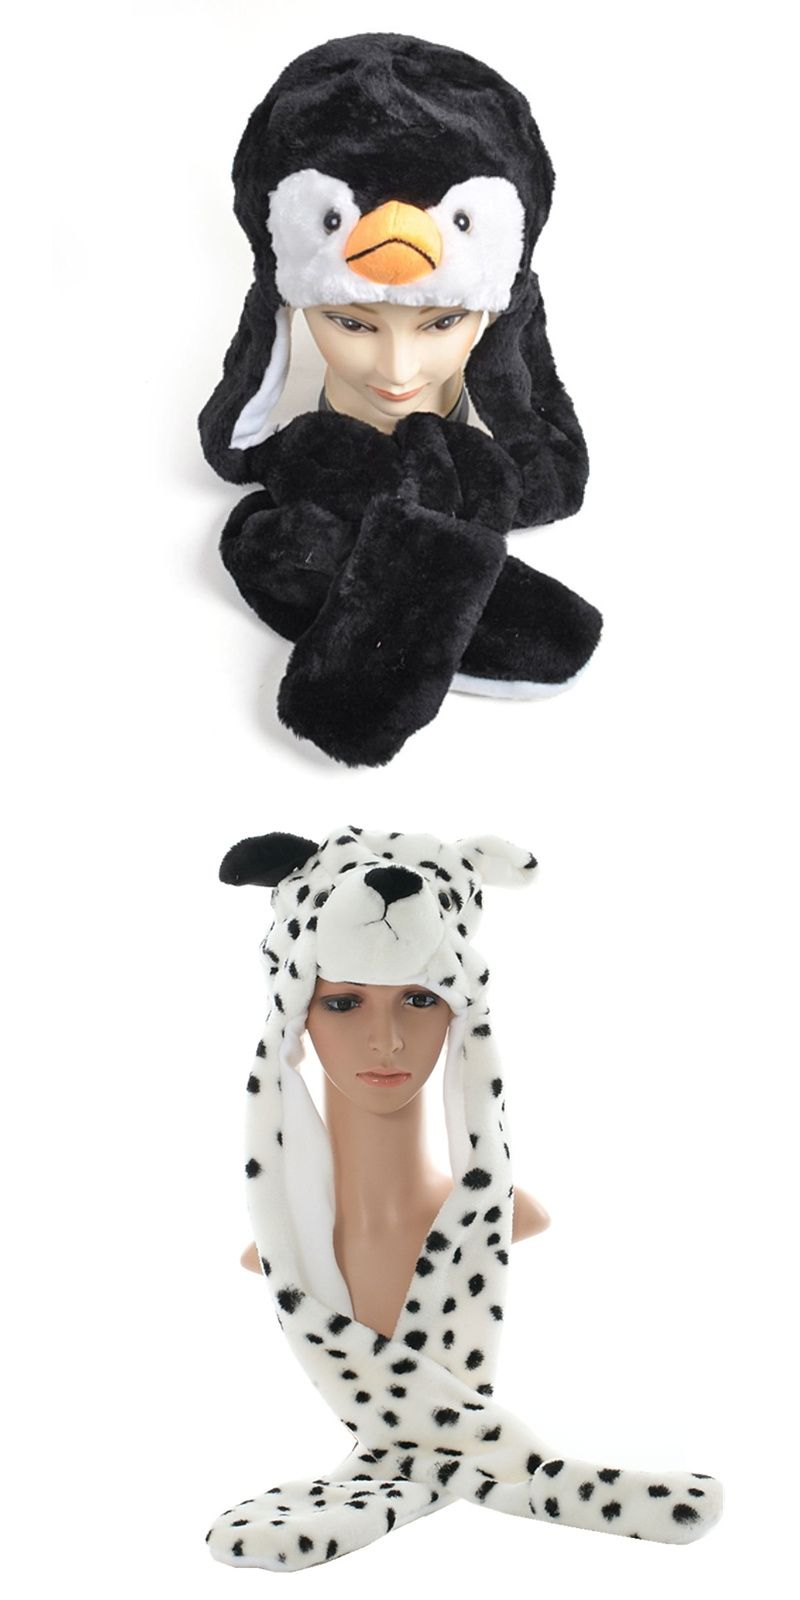 b57e5d57b8d DOUBCHOW New Fashion Cute Plush Black Penguin Animal Hat with Paws Gloves  Adults Teenagers Kids Boys